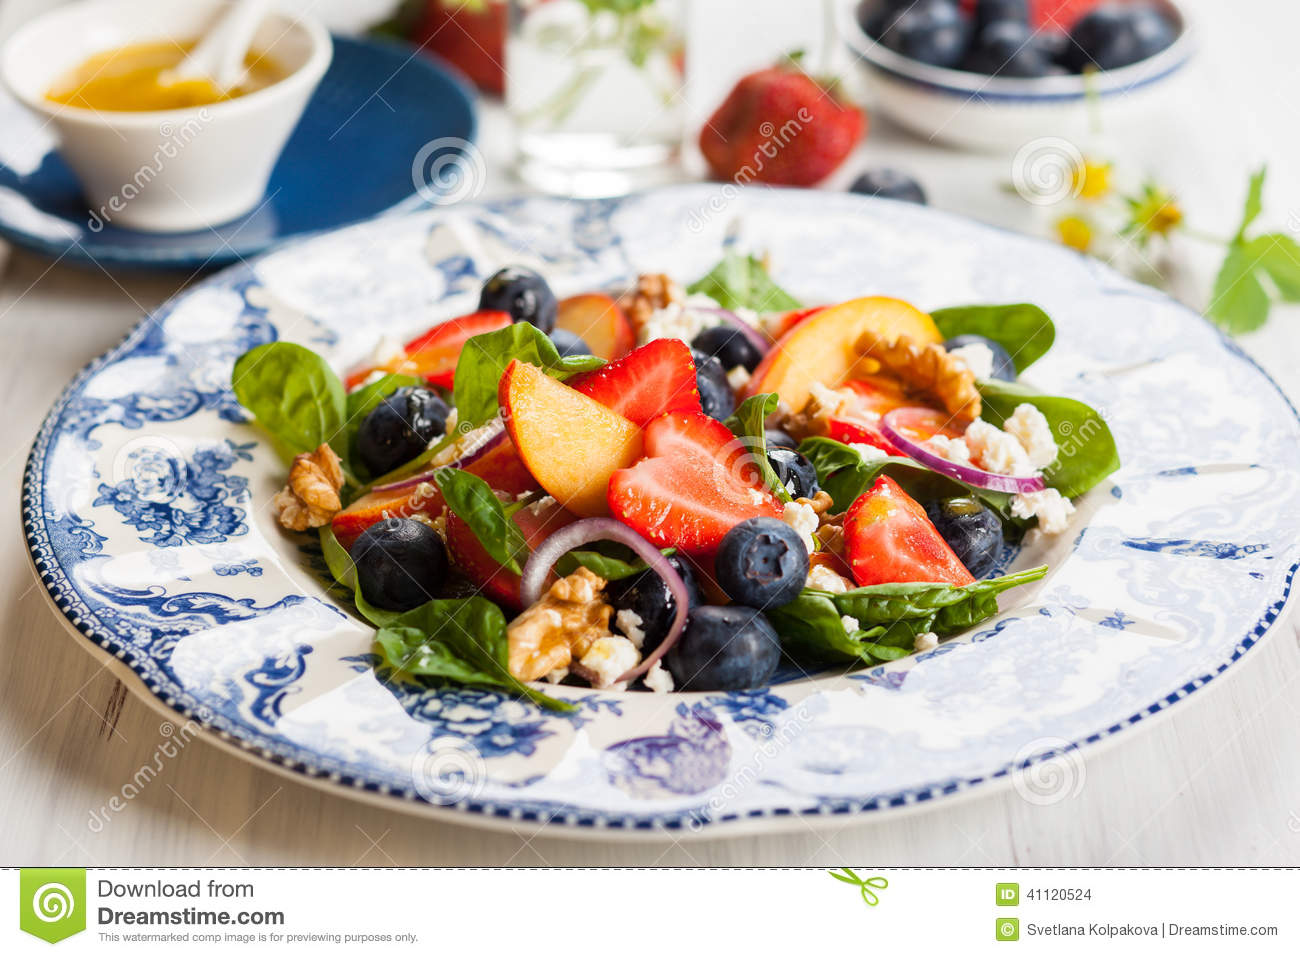 Spinach and Fruit Salad with Honey Mustard Vinaigrette.